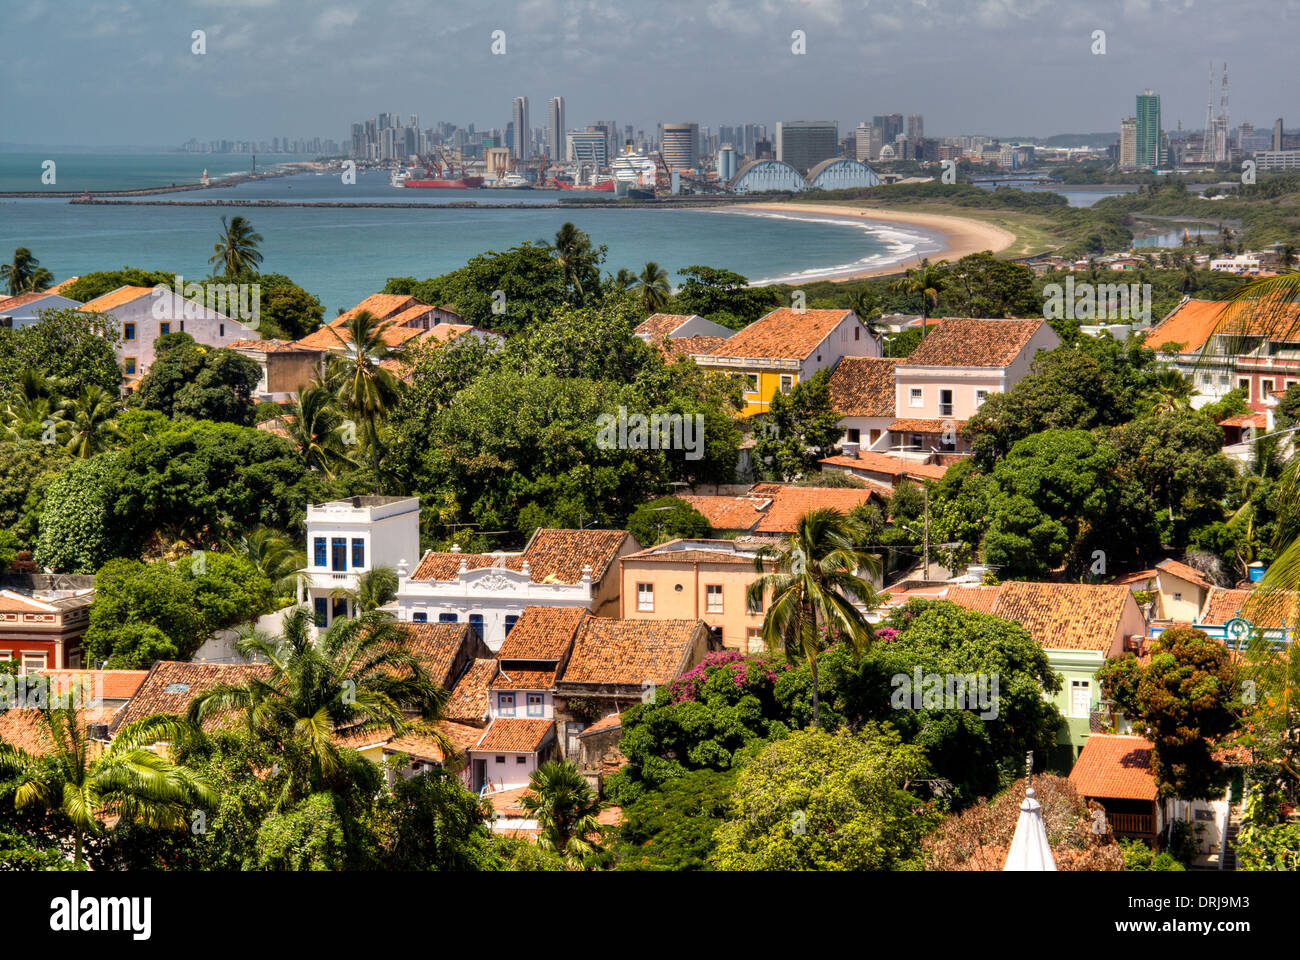 View over Recife from Olinda, Brazil - Stock Image